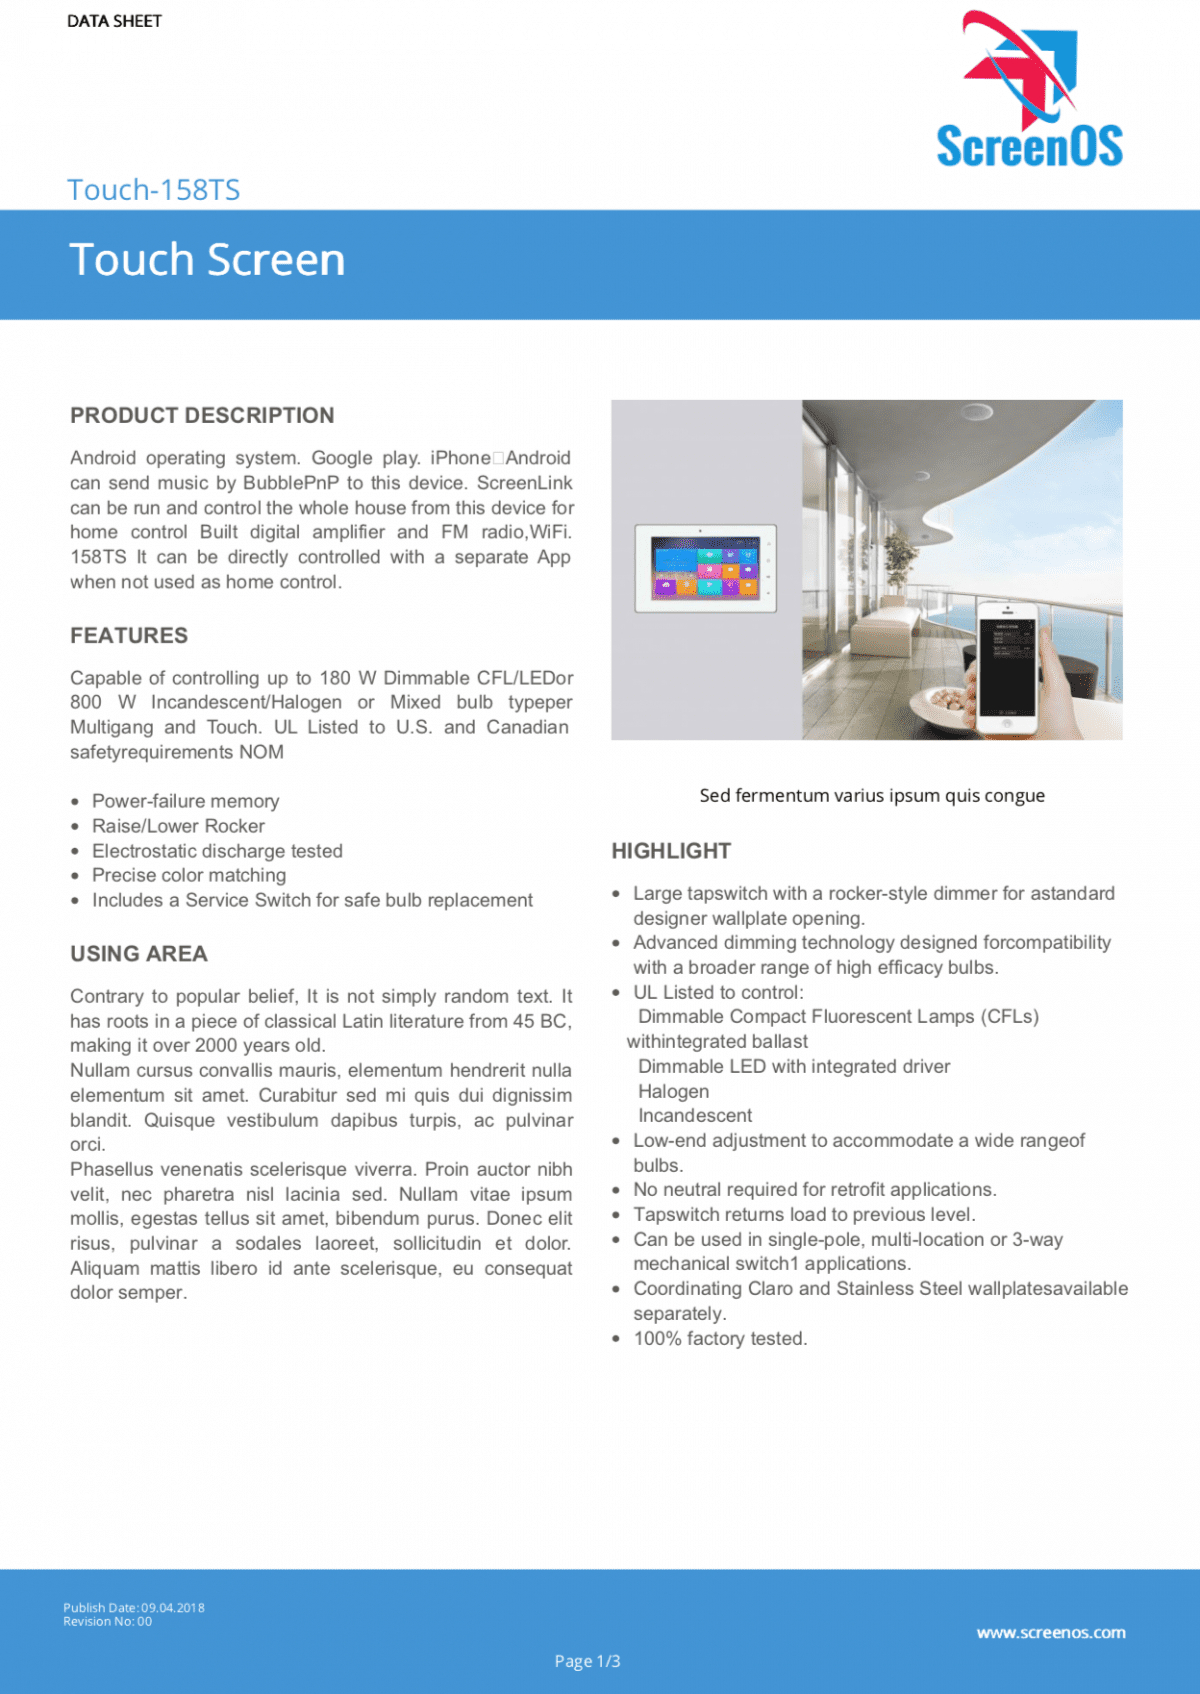 Free Templates  Data Sheet Spec Sheet And More  Tdsmaker With Regard To Datasheet Template Word